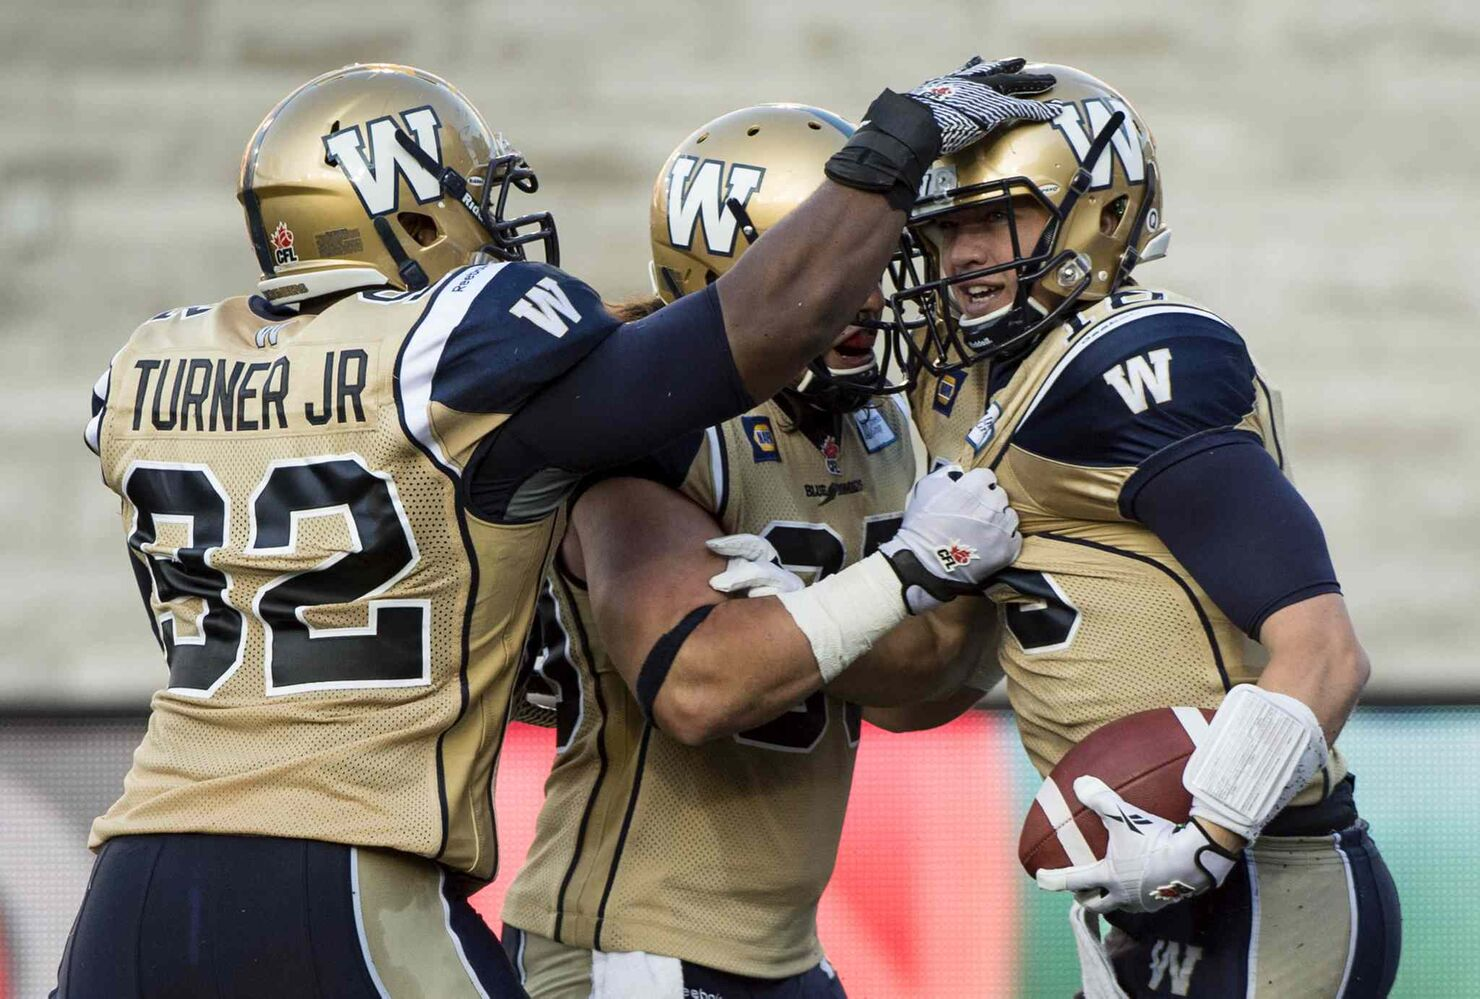 Winnipeg Blue Bombers' Robert Marve, right celebrates a touchdown with teammates Bryant Turner Jr., and Michel-Pierre Pontbriand as the Bombers face the Montreal Alouettes during the first quarter of Friday's game.